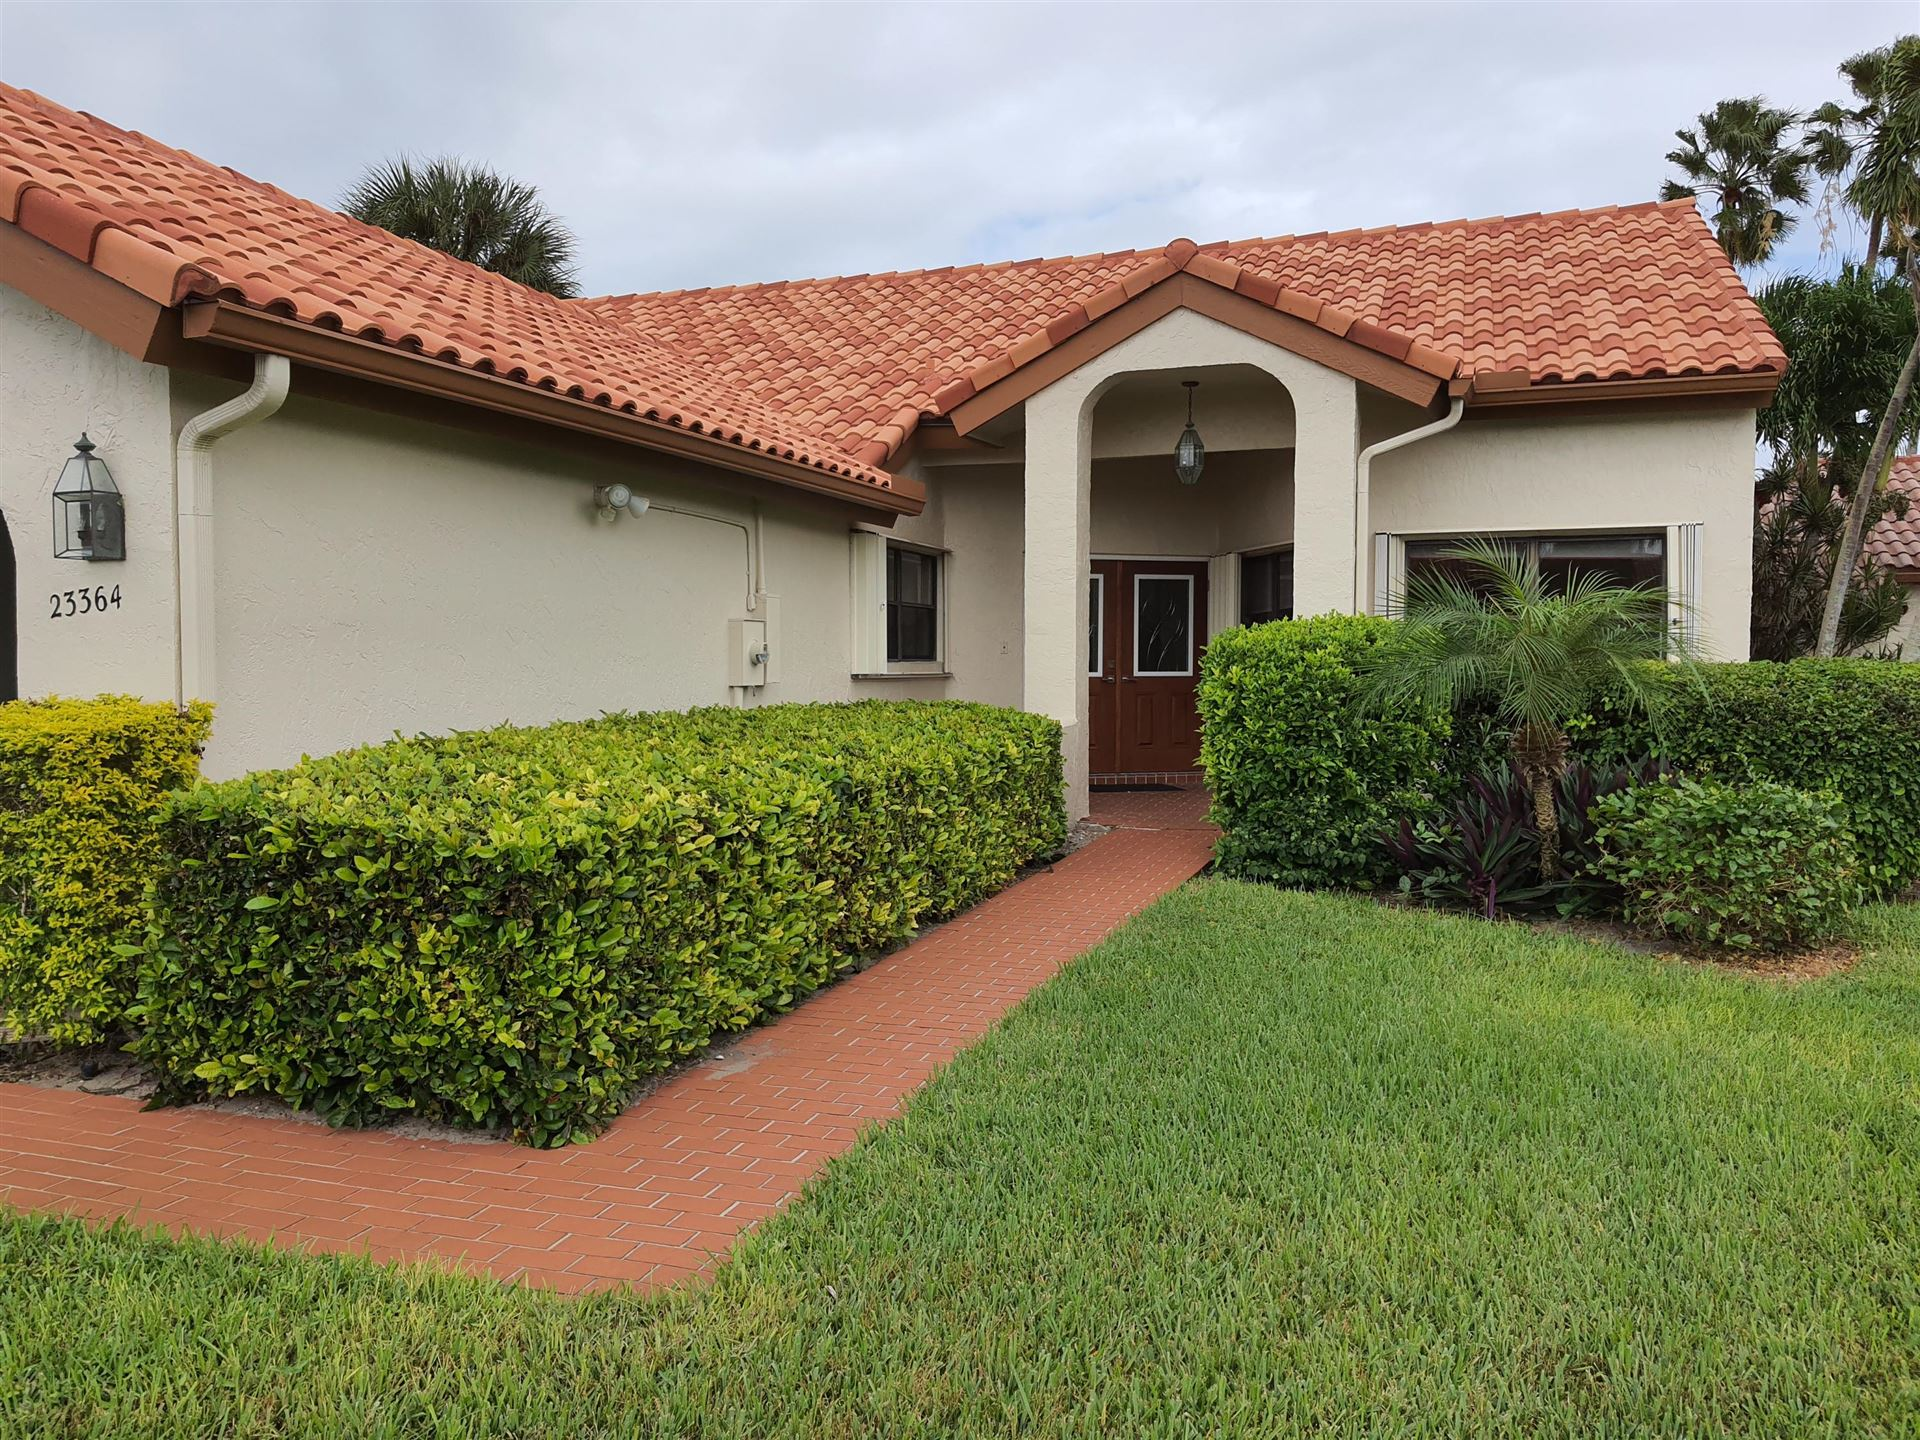 23364 Water Circle, Boca Raton, FL 33486 - #: RX-10673223